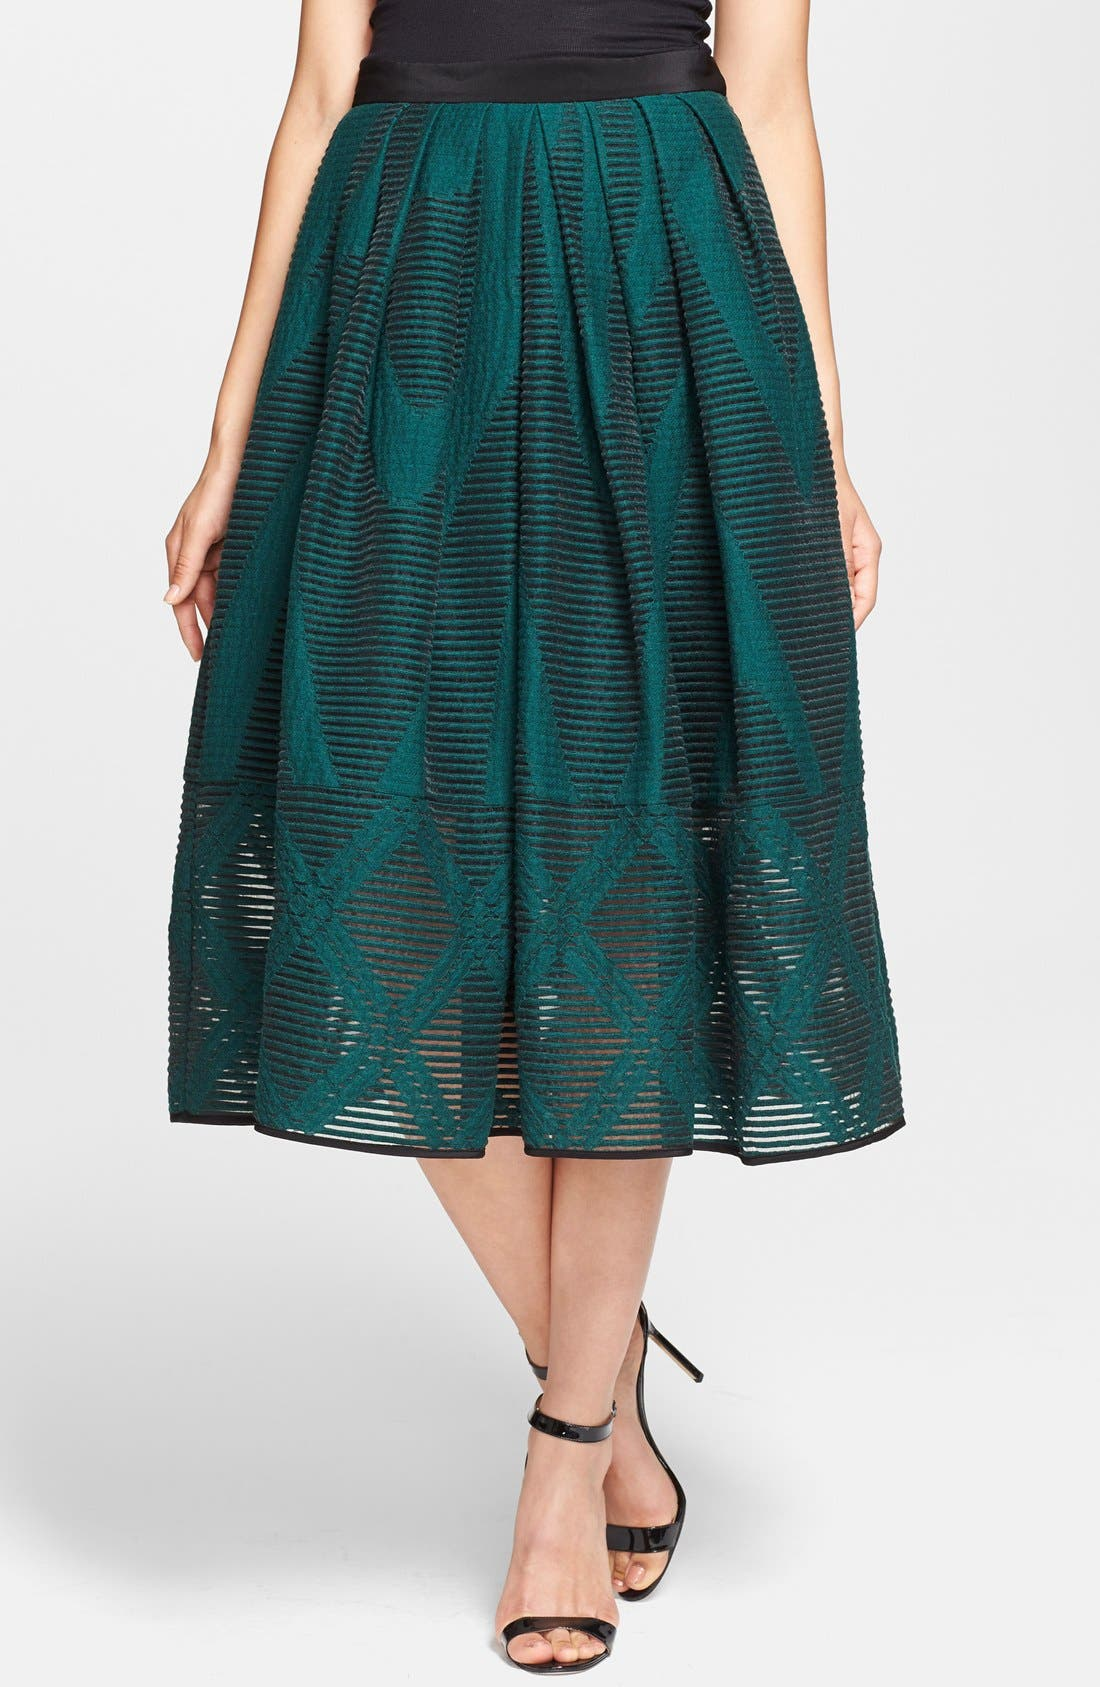 Alternate Image 1 Selected - Tibi 'Arboretum' Midi Skirt